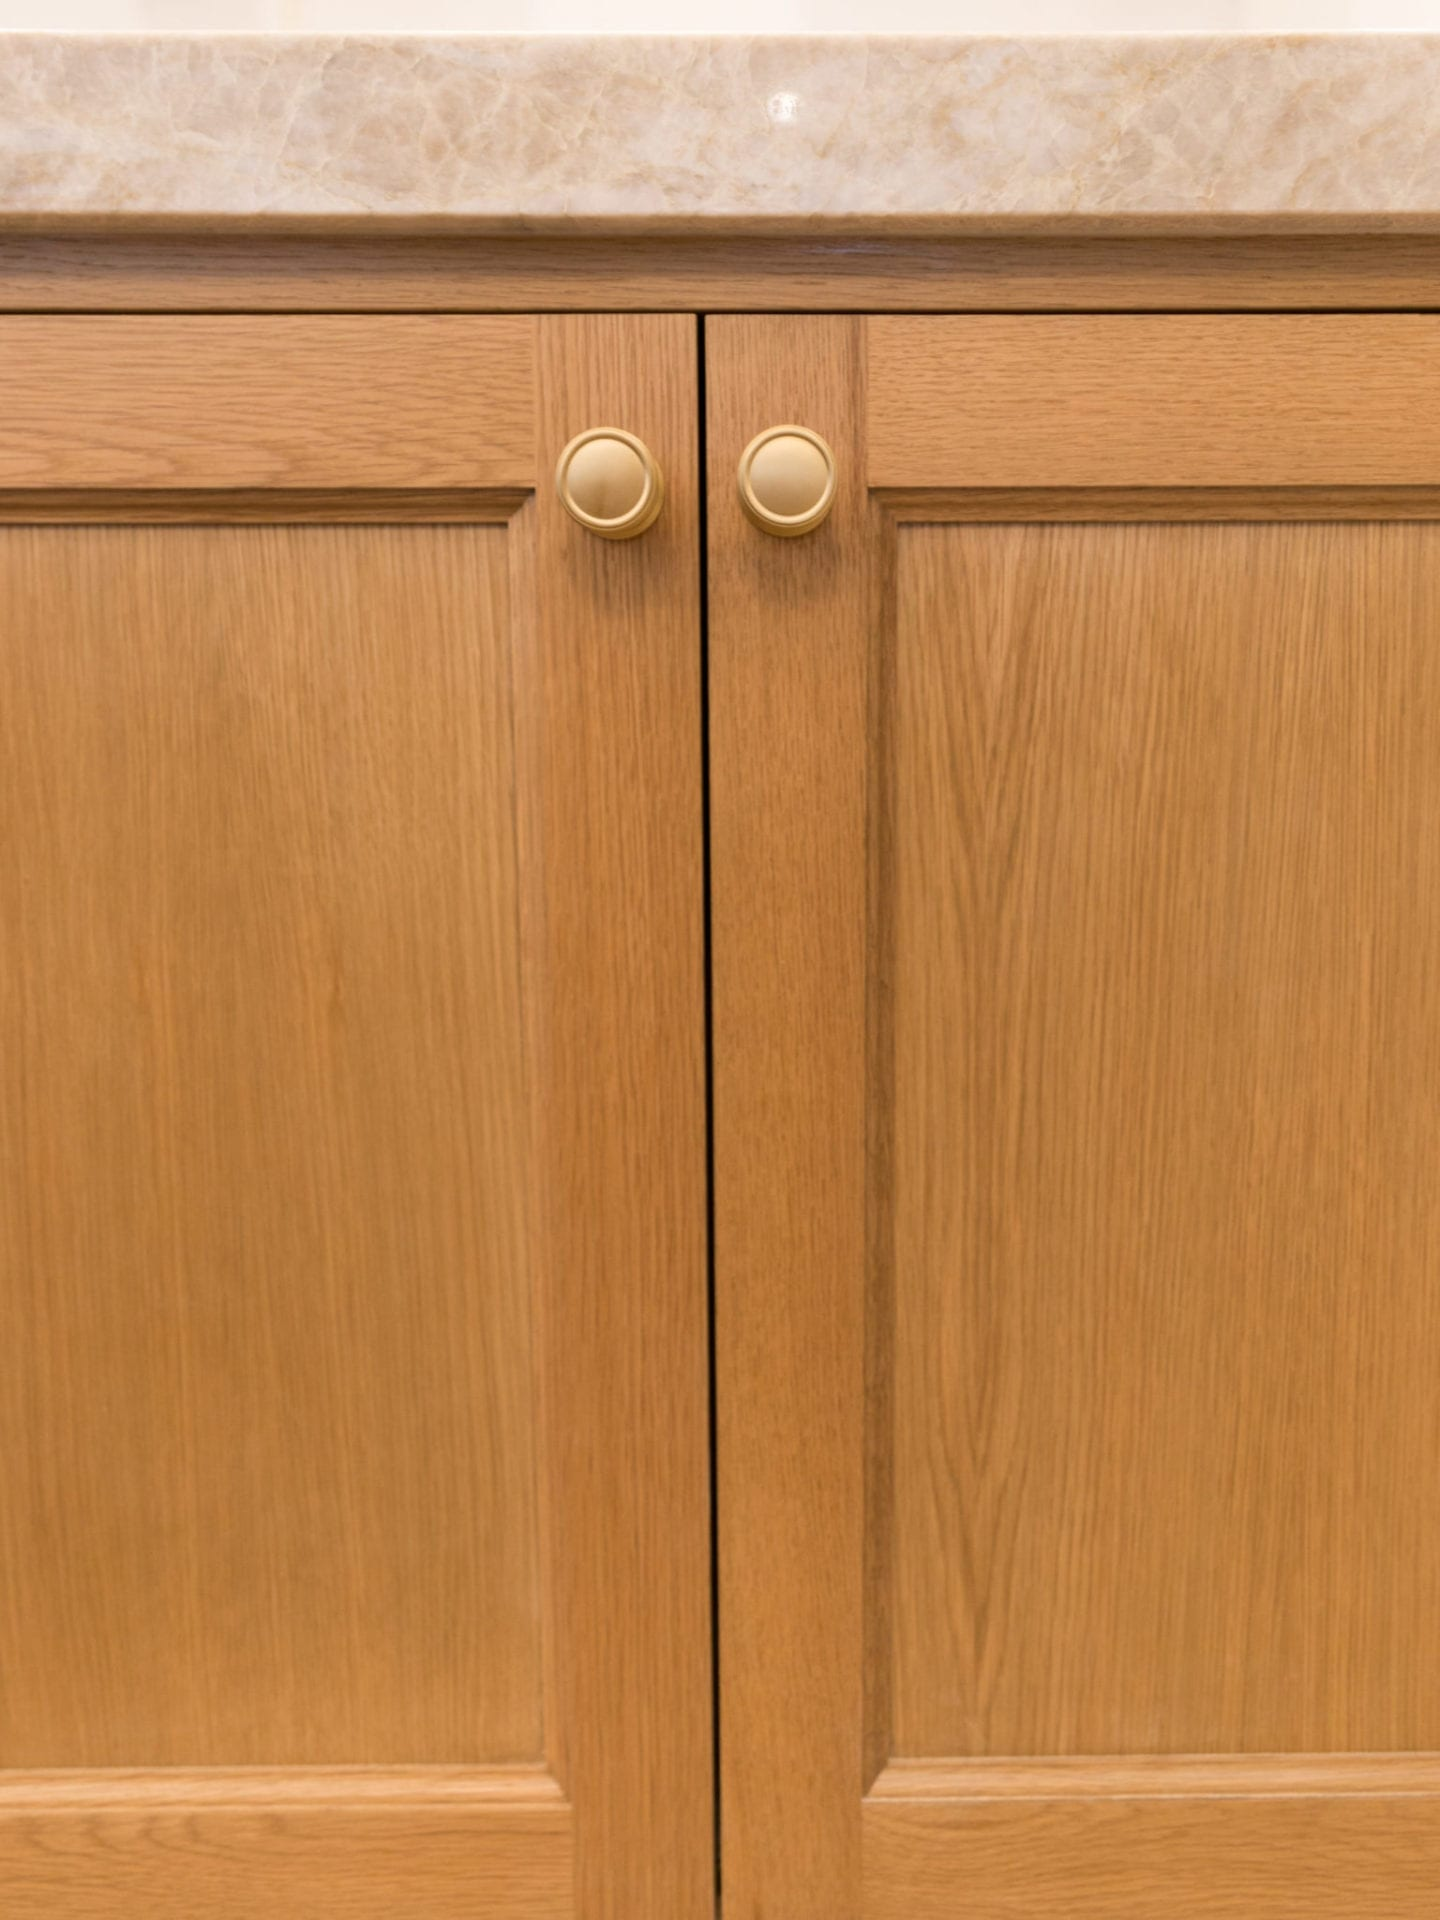 VESTA hardware Knobs on oak kitchen cabinets.